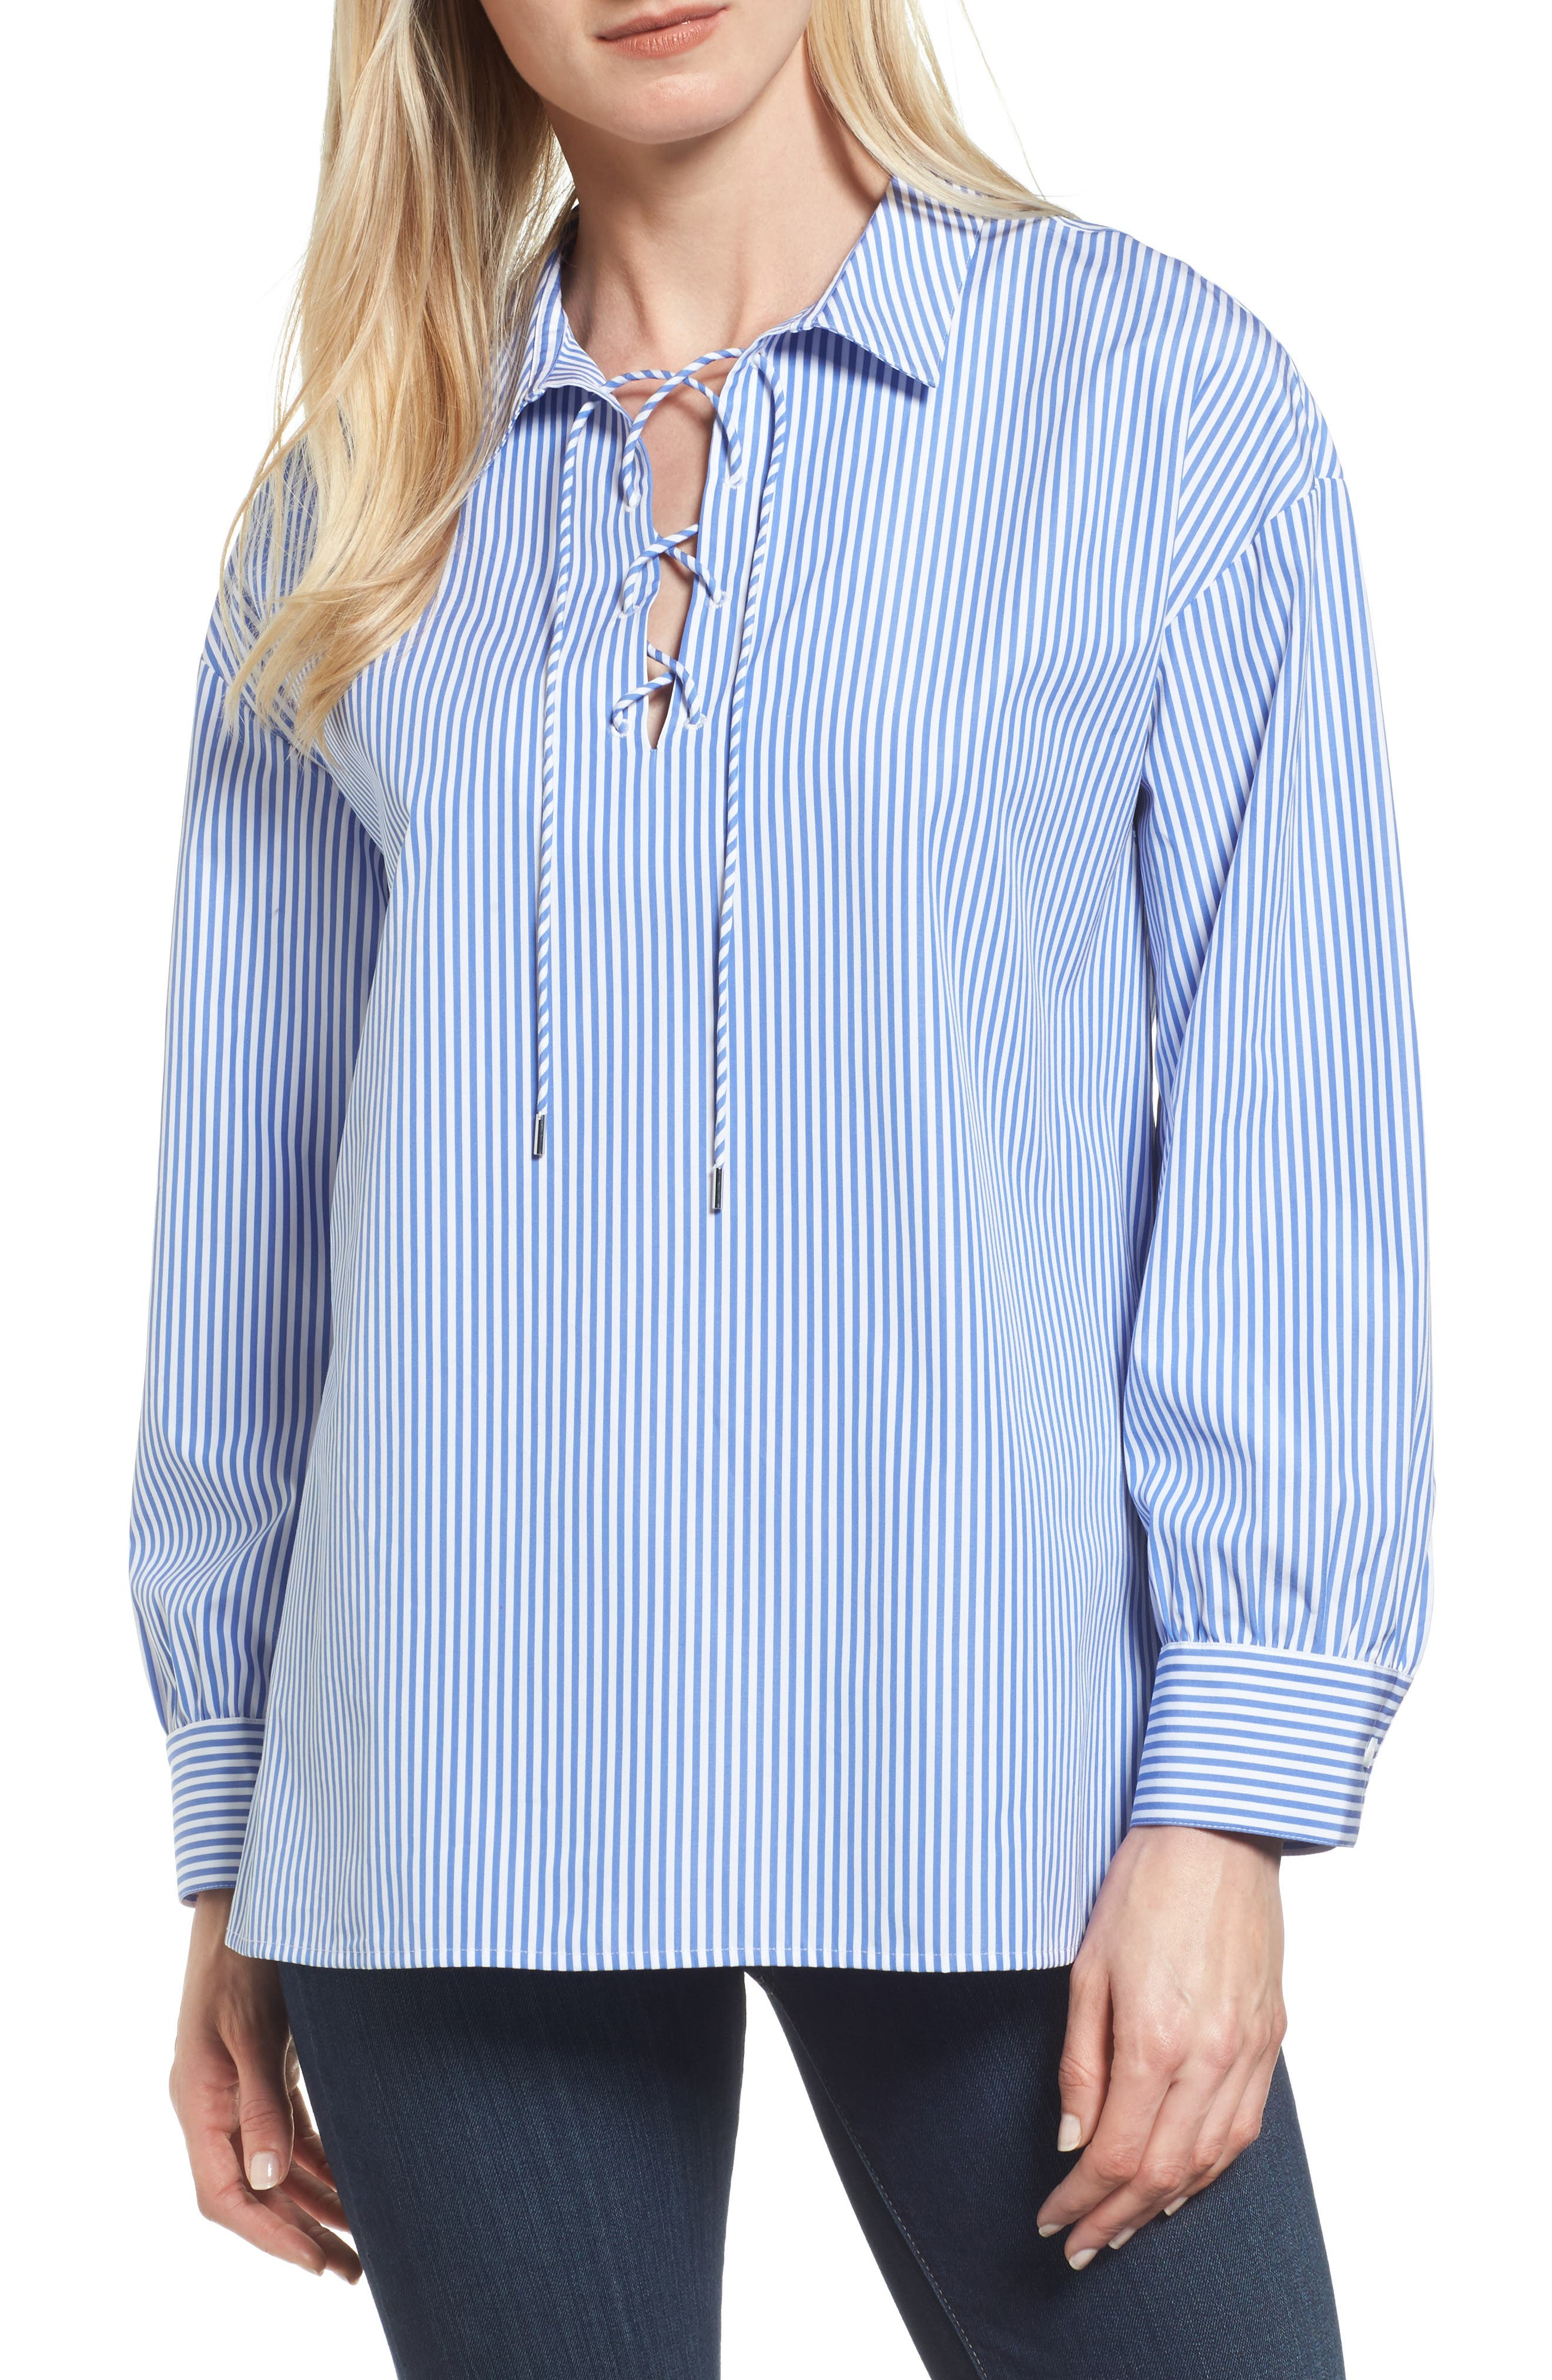 Lace-Up Stripe Shirt,                         Main,                         color, Blue/ White Stripe